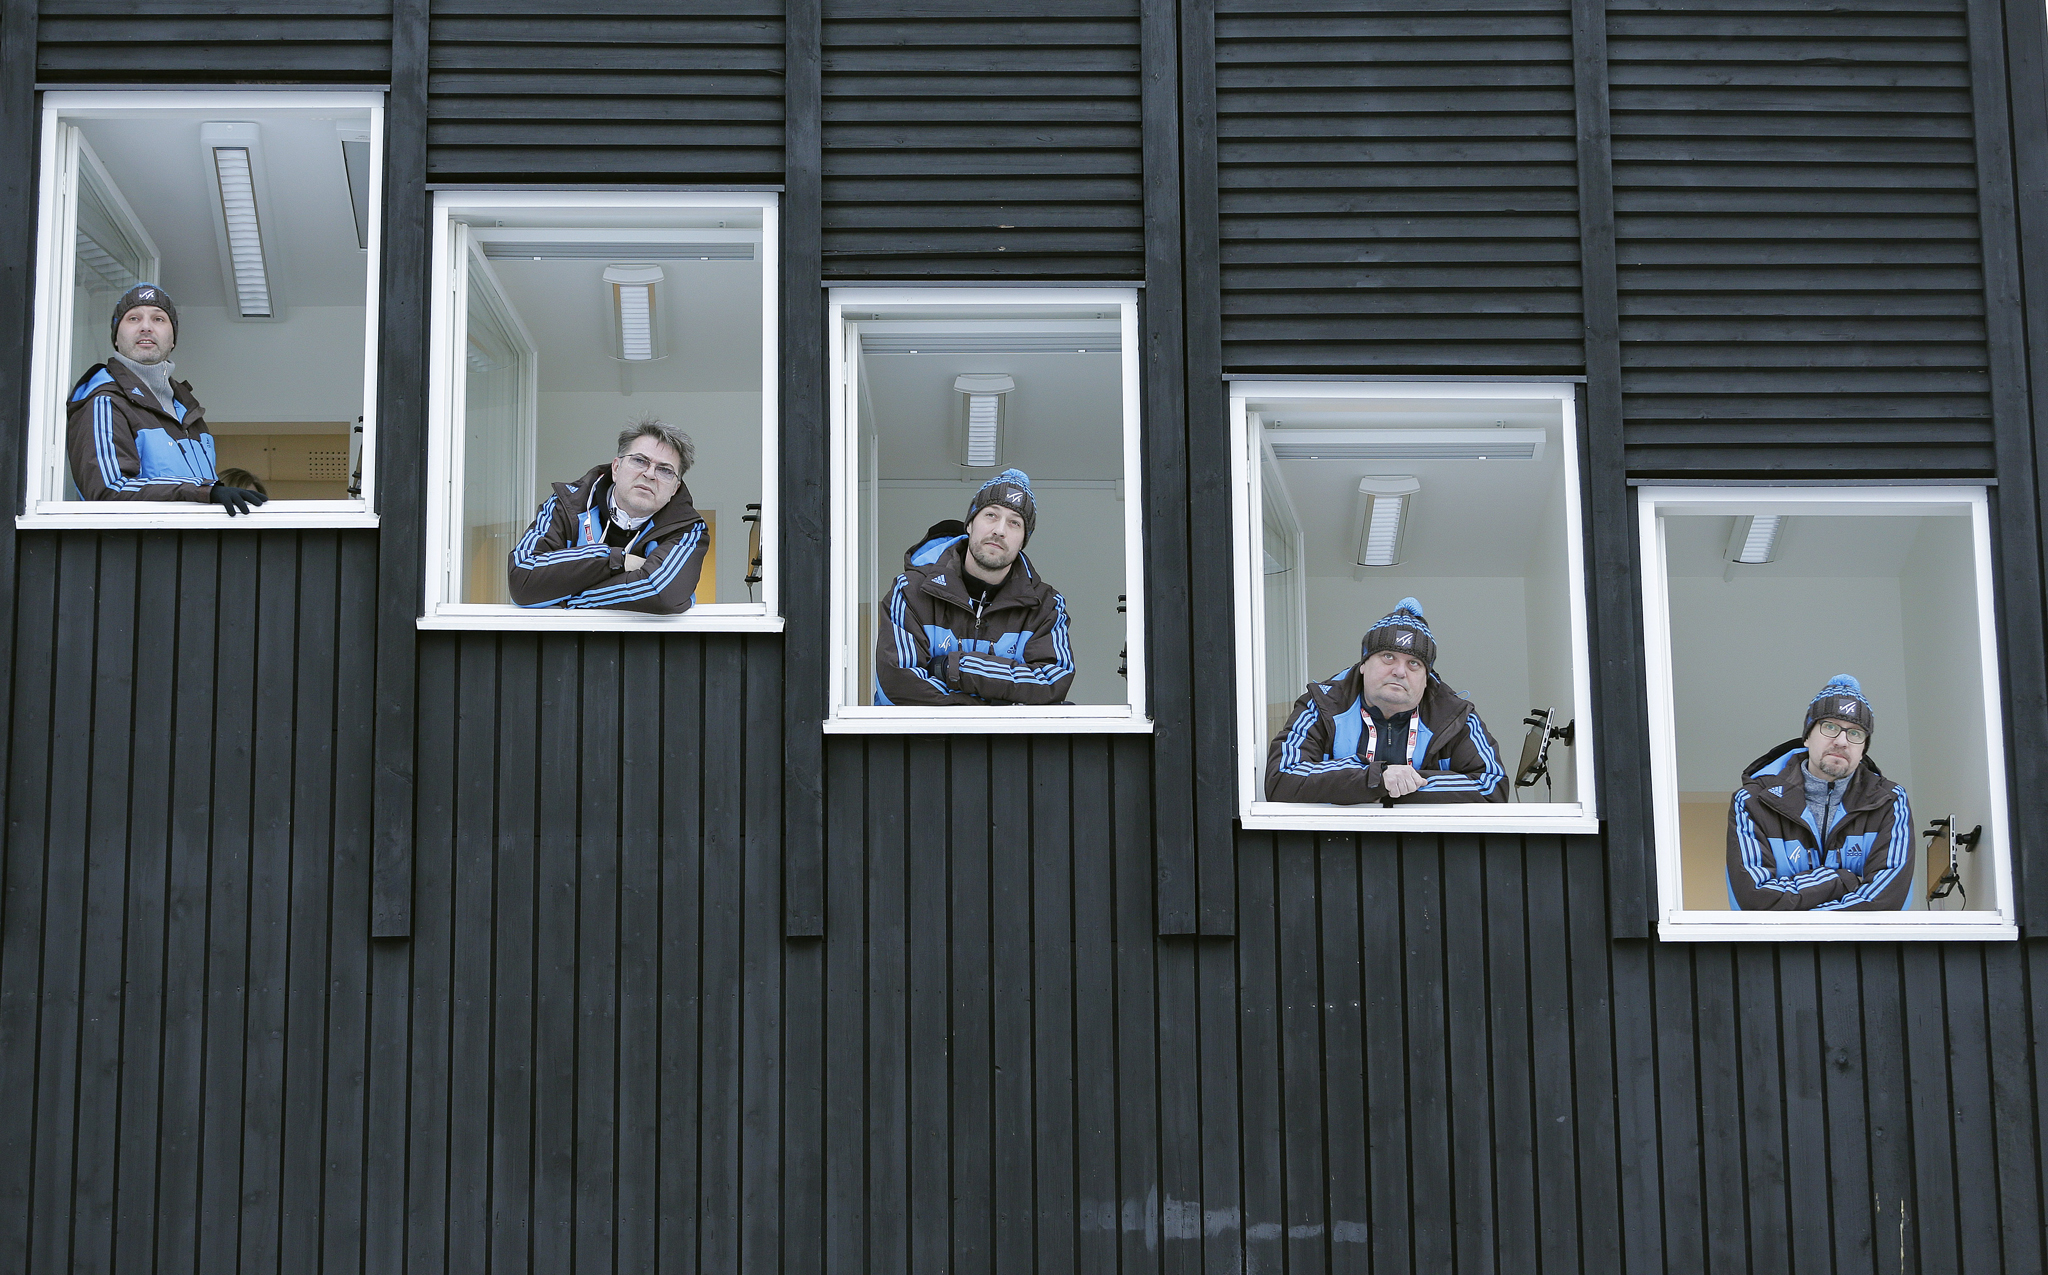 Judges of the normal hill ski jumping competition look out of windows at the Nordic Skiing World Championships in Falun, Sweden, Friday, Feb. 20, 2015. The individual competition was shifted to later in the day due to heavy winds. (AP Photo/Matthias Schrader)